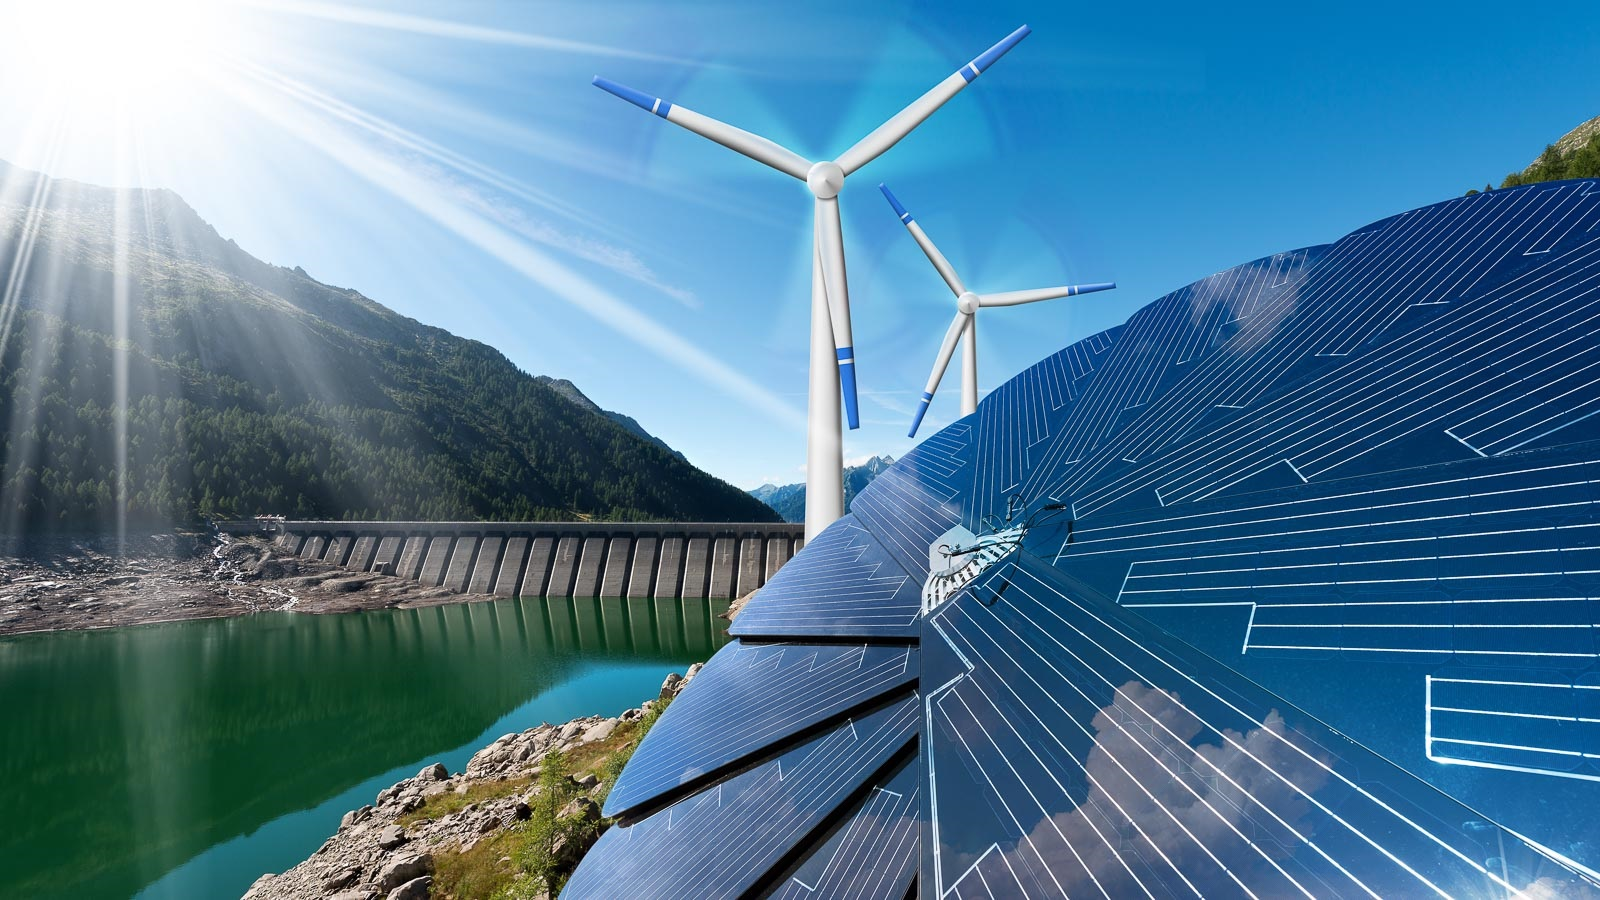 It is increasingly critical to properly value pumped storage hydropower as the prevalence and penetration of wind and solar energies grow in importance in the US electrical power grid. (Image by Alberto Masnovo.)